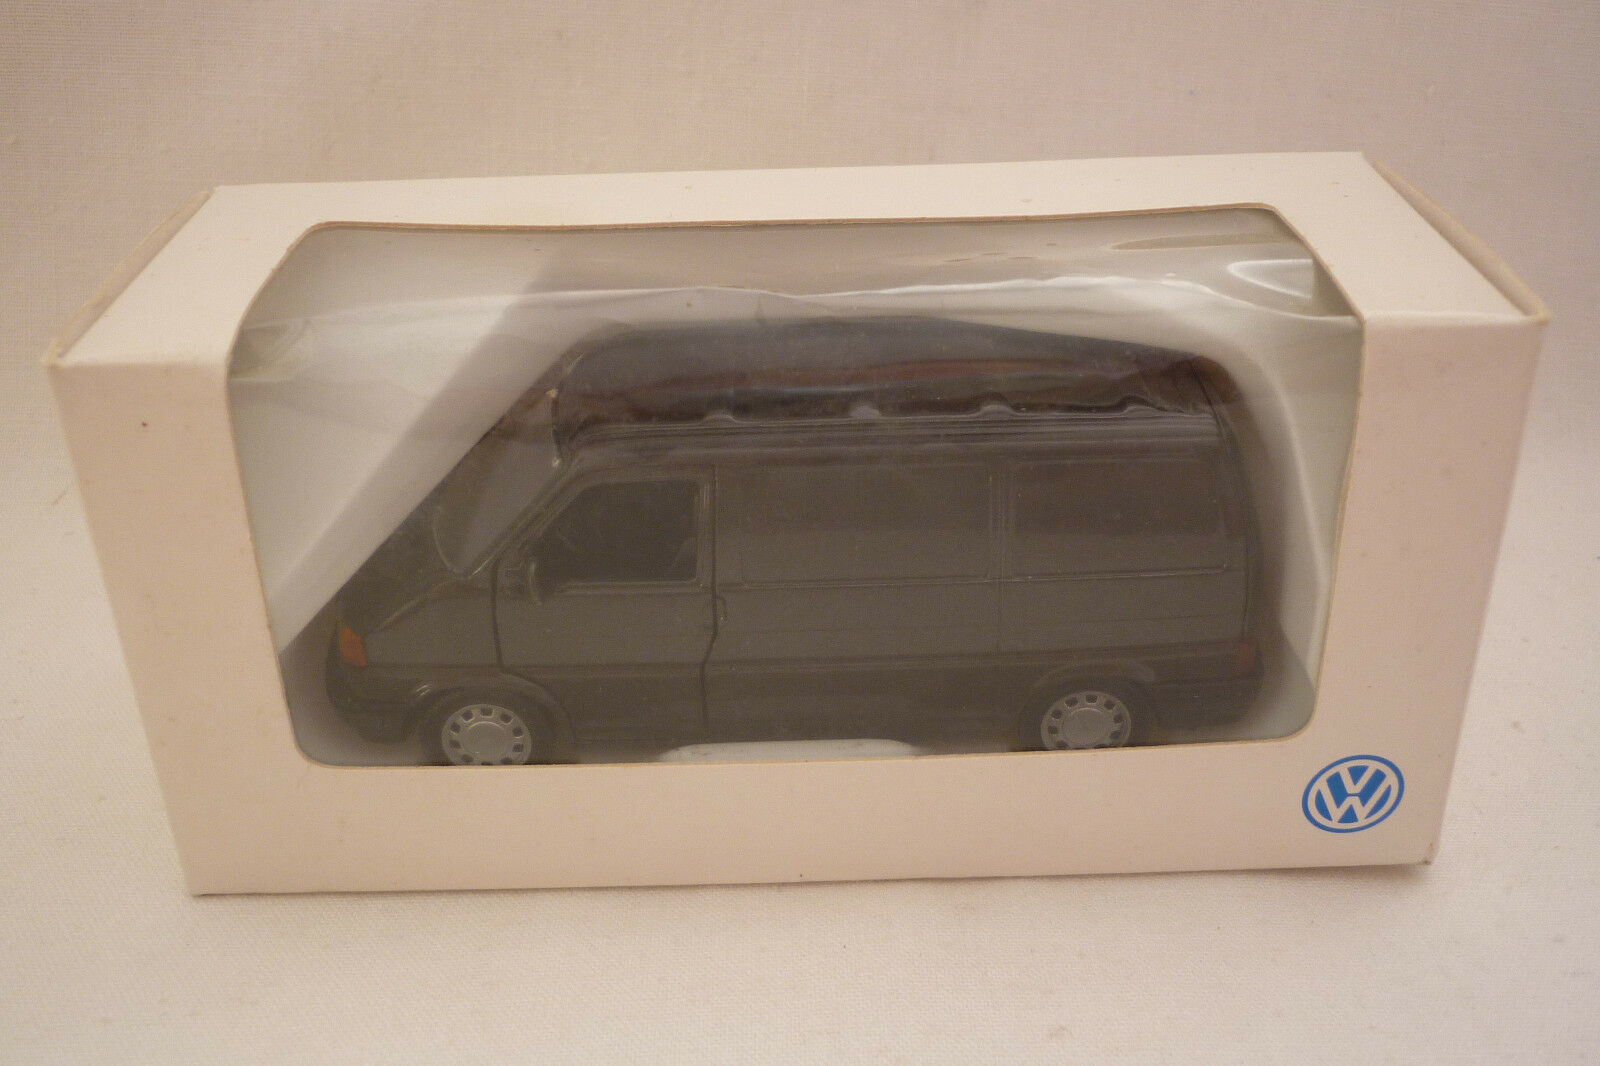 Schabak - Model - VW T4 Transporter - 1 43 - Ovp - (3.div-17)